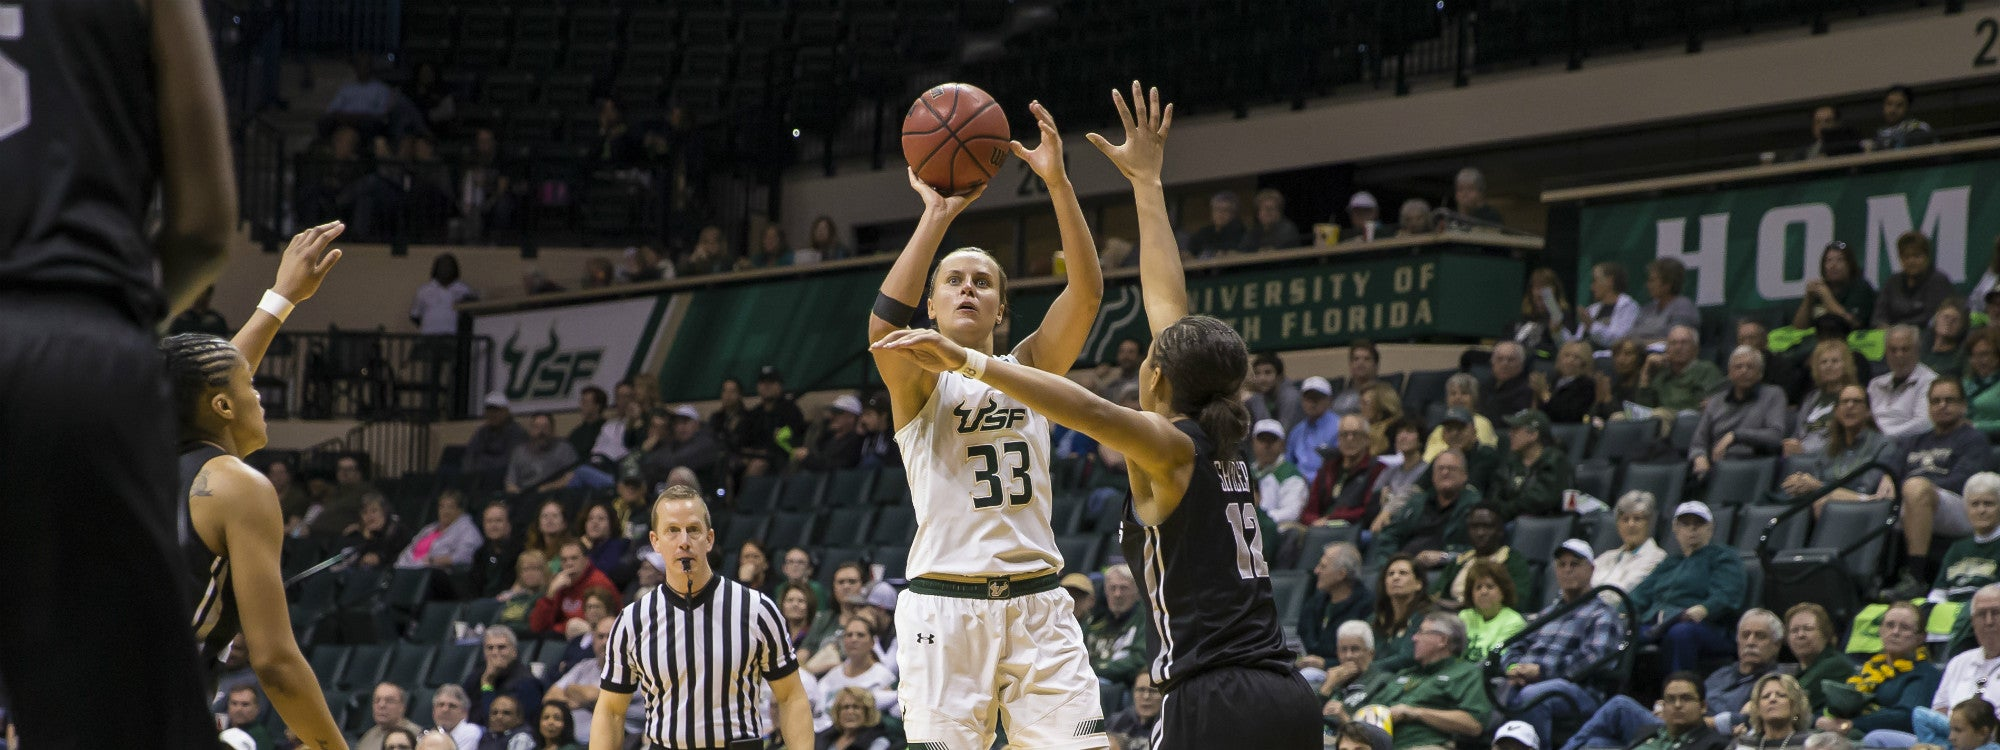 USF Women's Basketball vs. Tulane